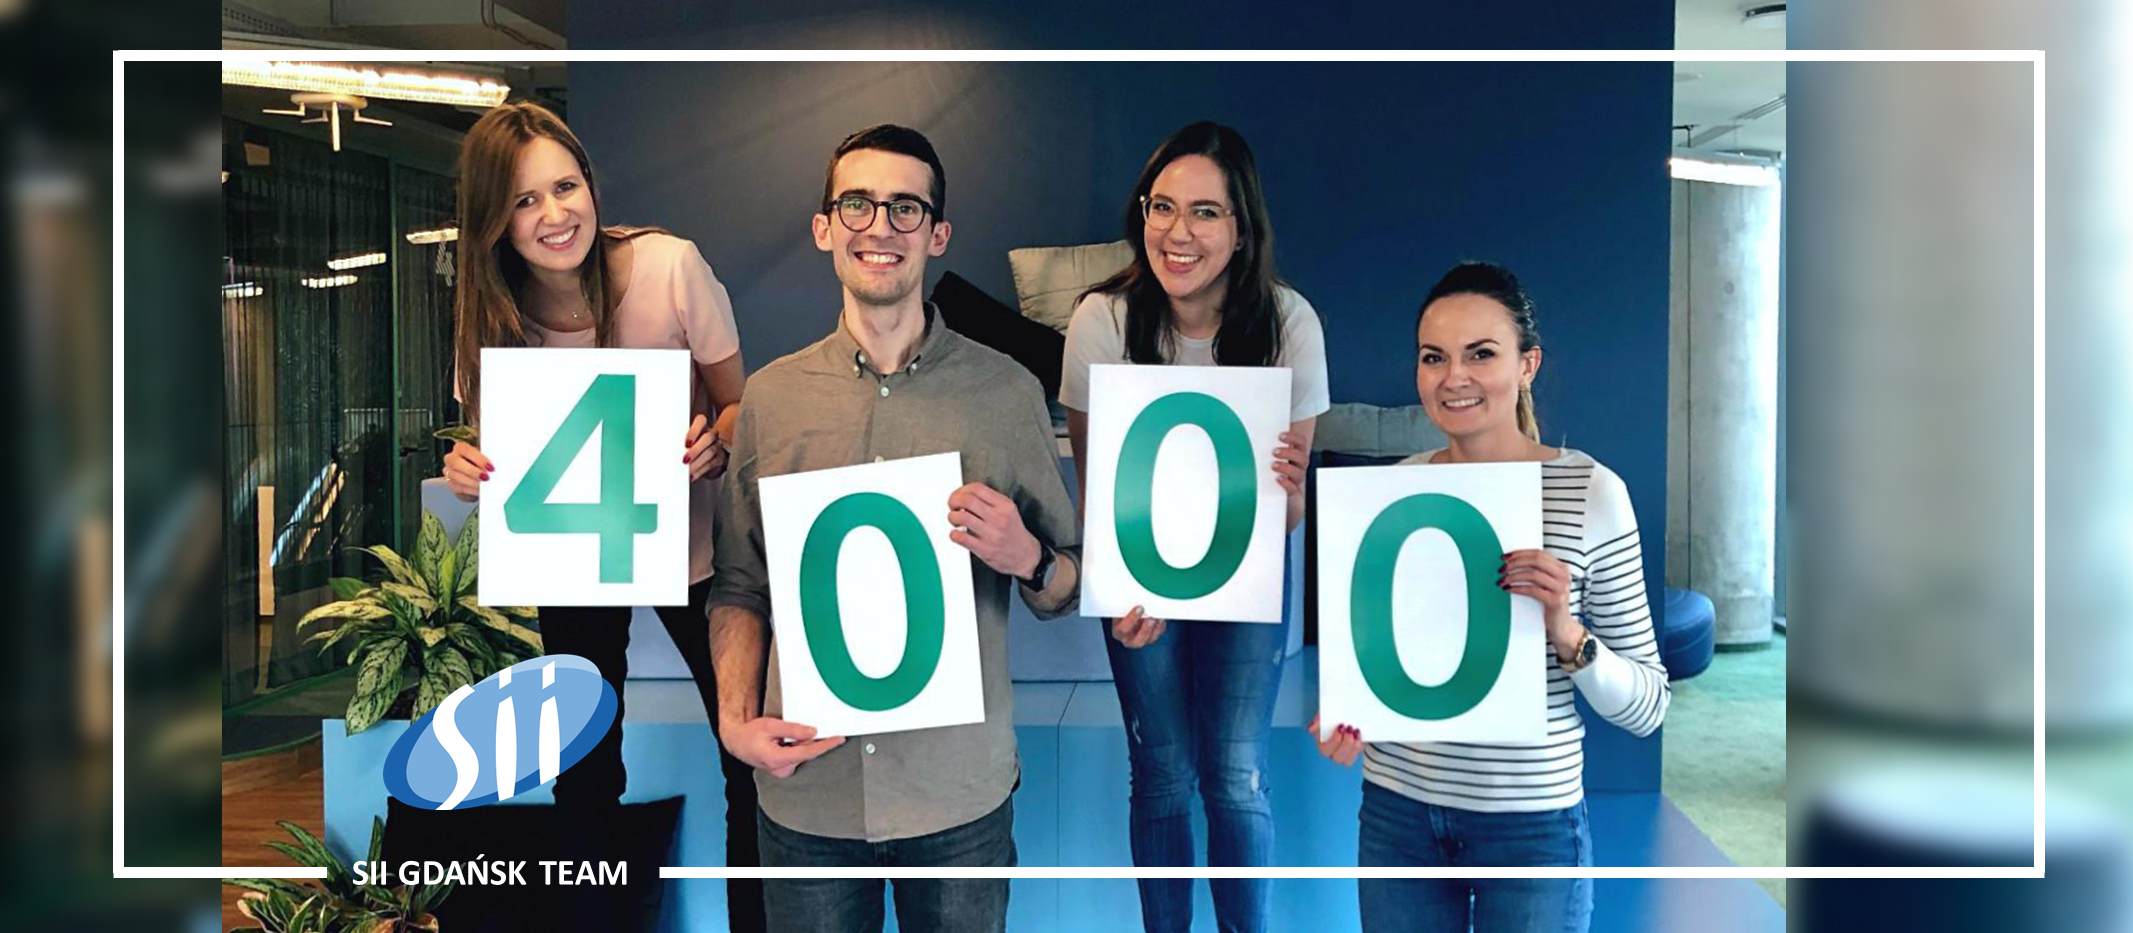 Sii celebrates 4 000 employees in 12 locations and we are ready for more!